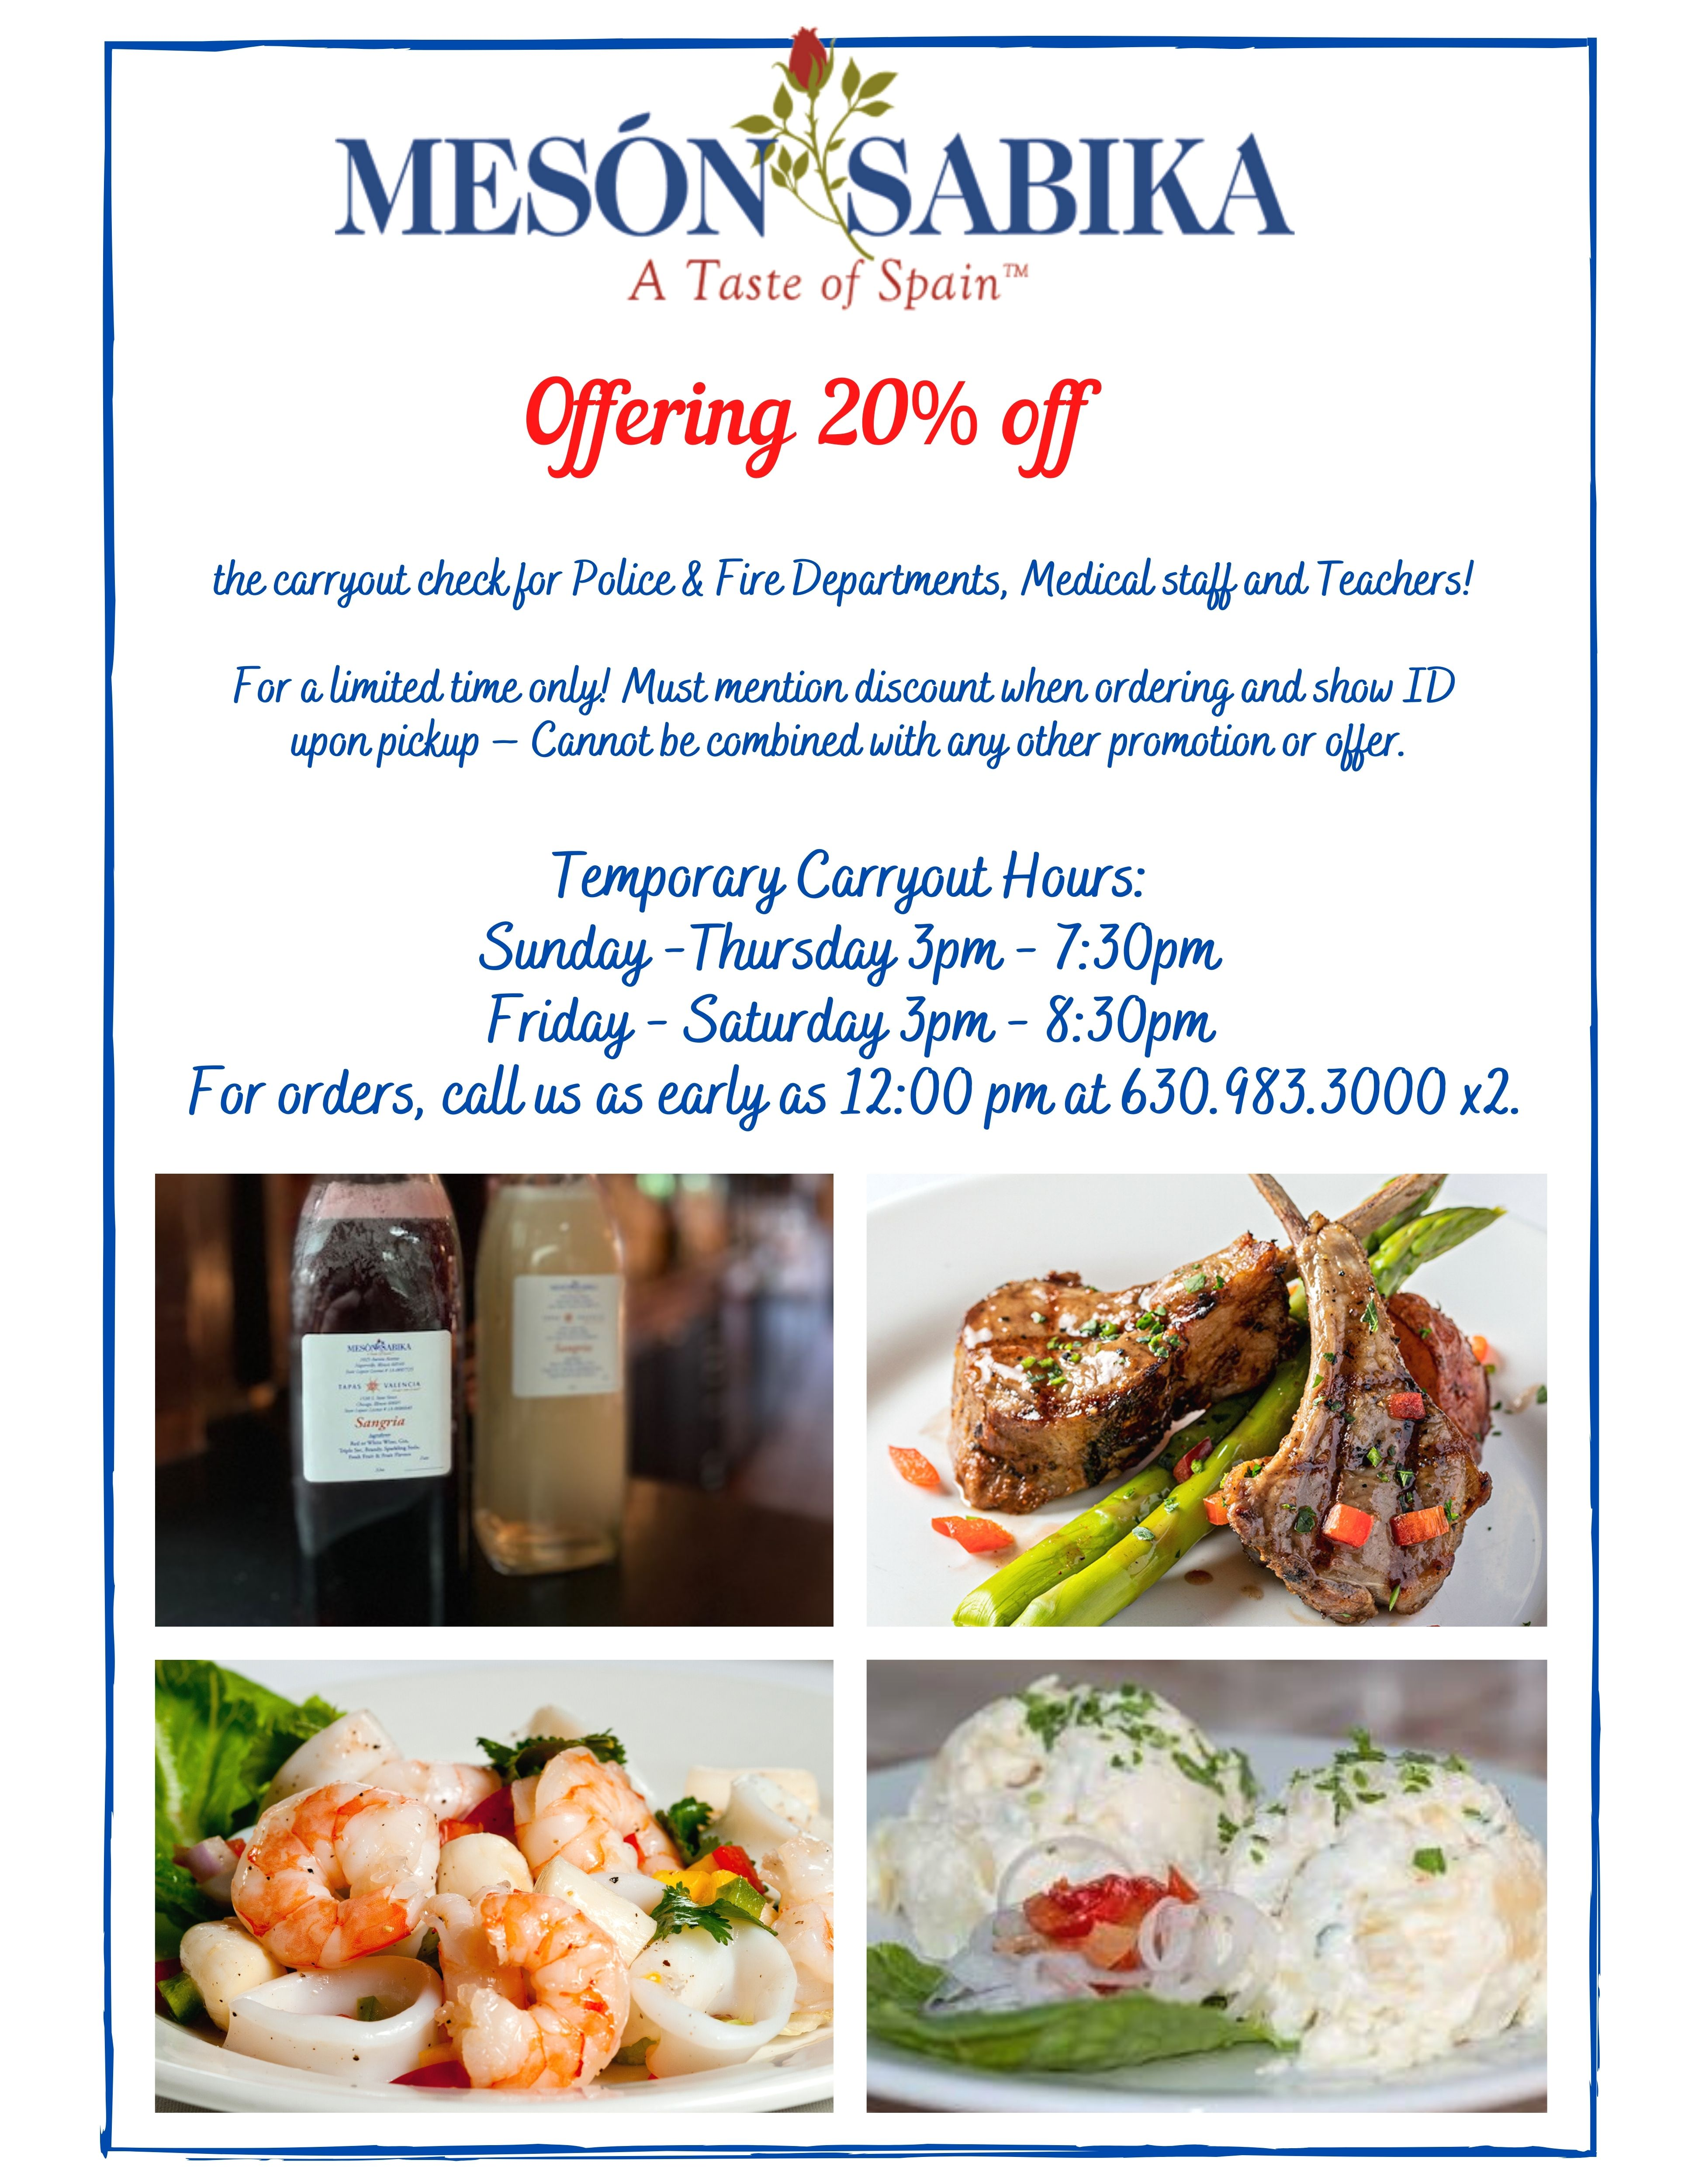 Offering 20% off the carryout check for Police & Fire Departments, Medical staff and Teachers! For a limited time only! Must mention discount when ordering and show ID upon pickup